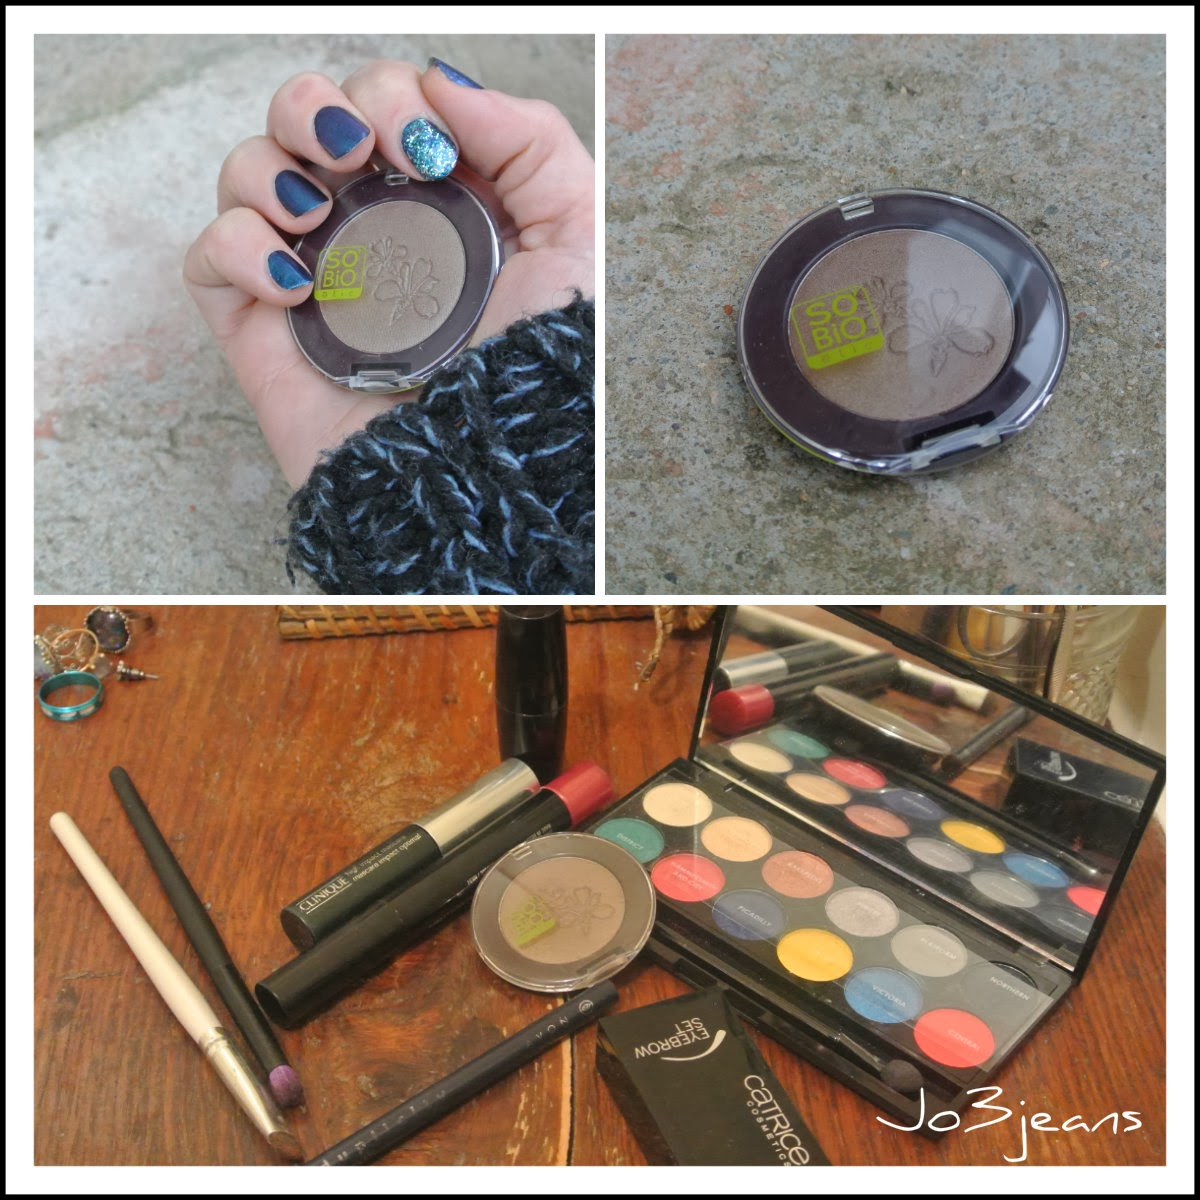 palette sleek glory, mascara clinique, palette sourcils Catrice, Kajal Yves Rocher, rouge à lèvres MAC